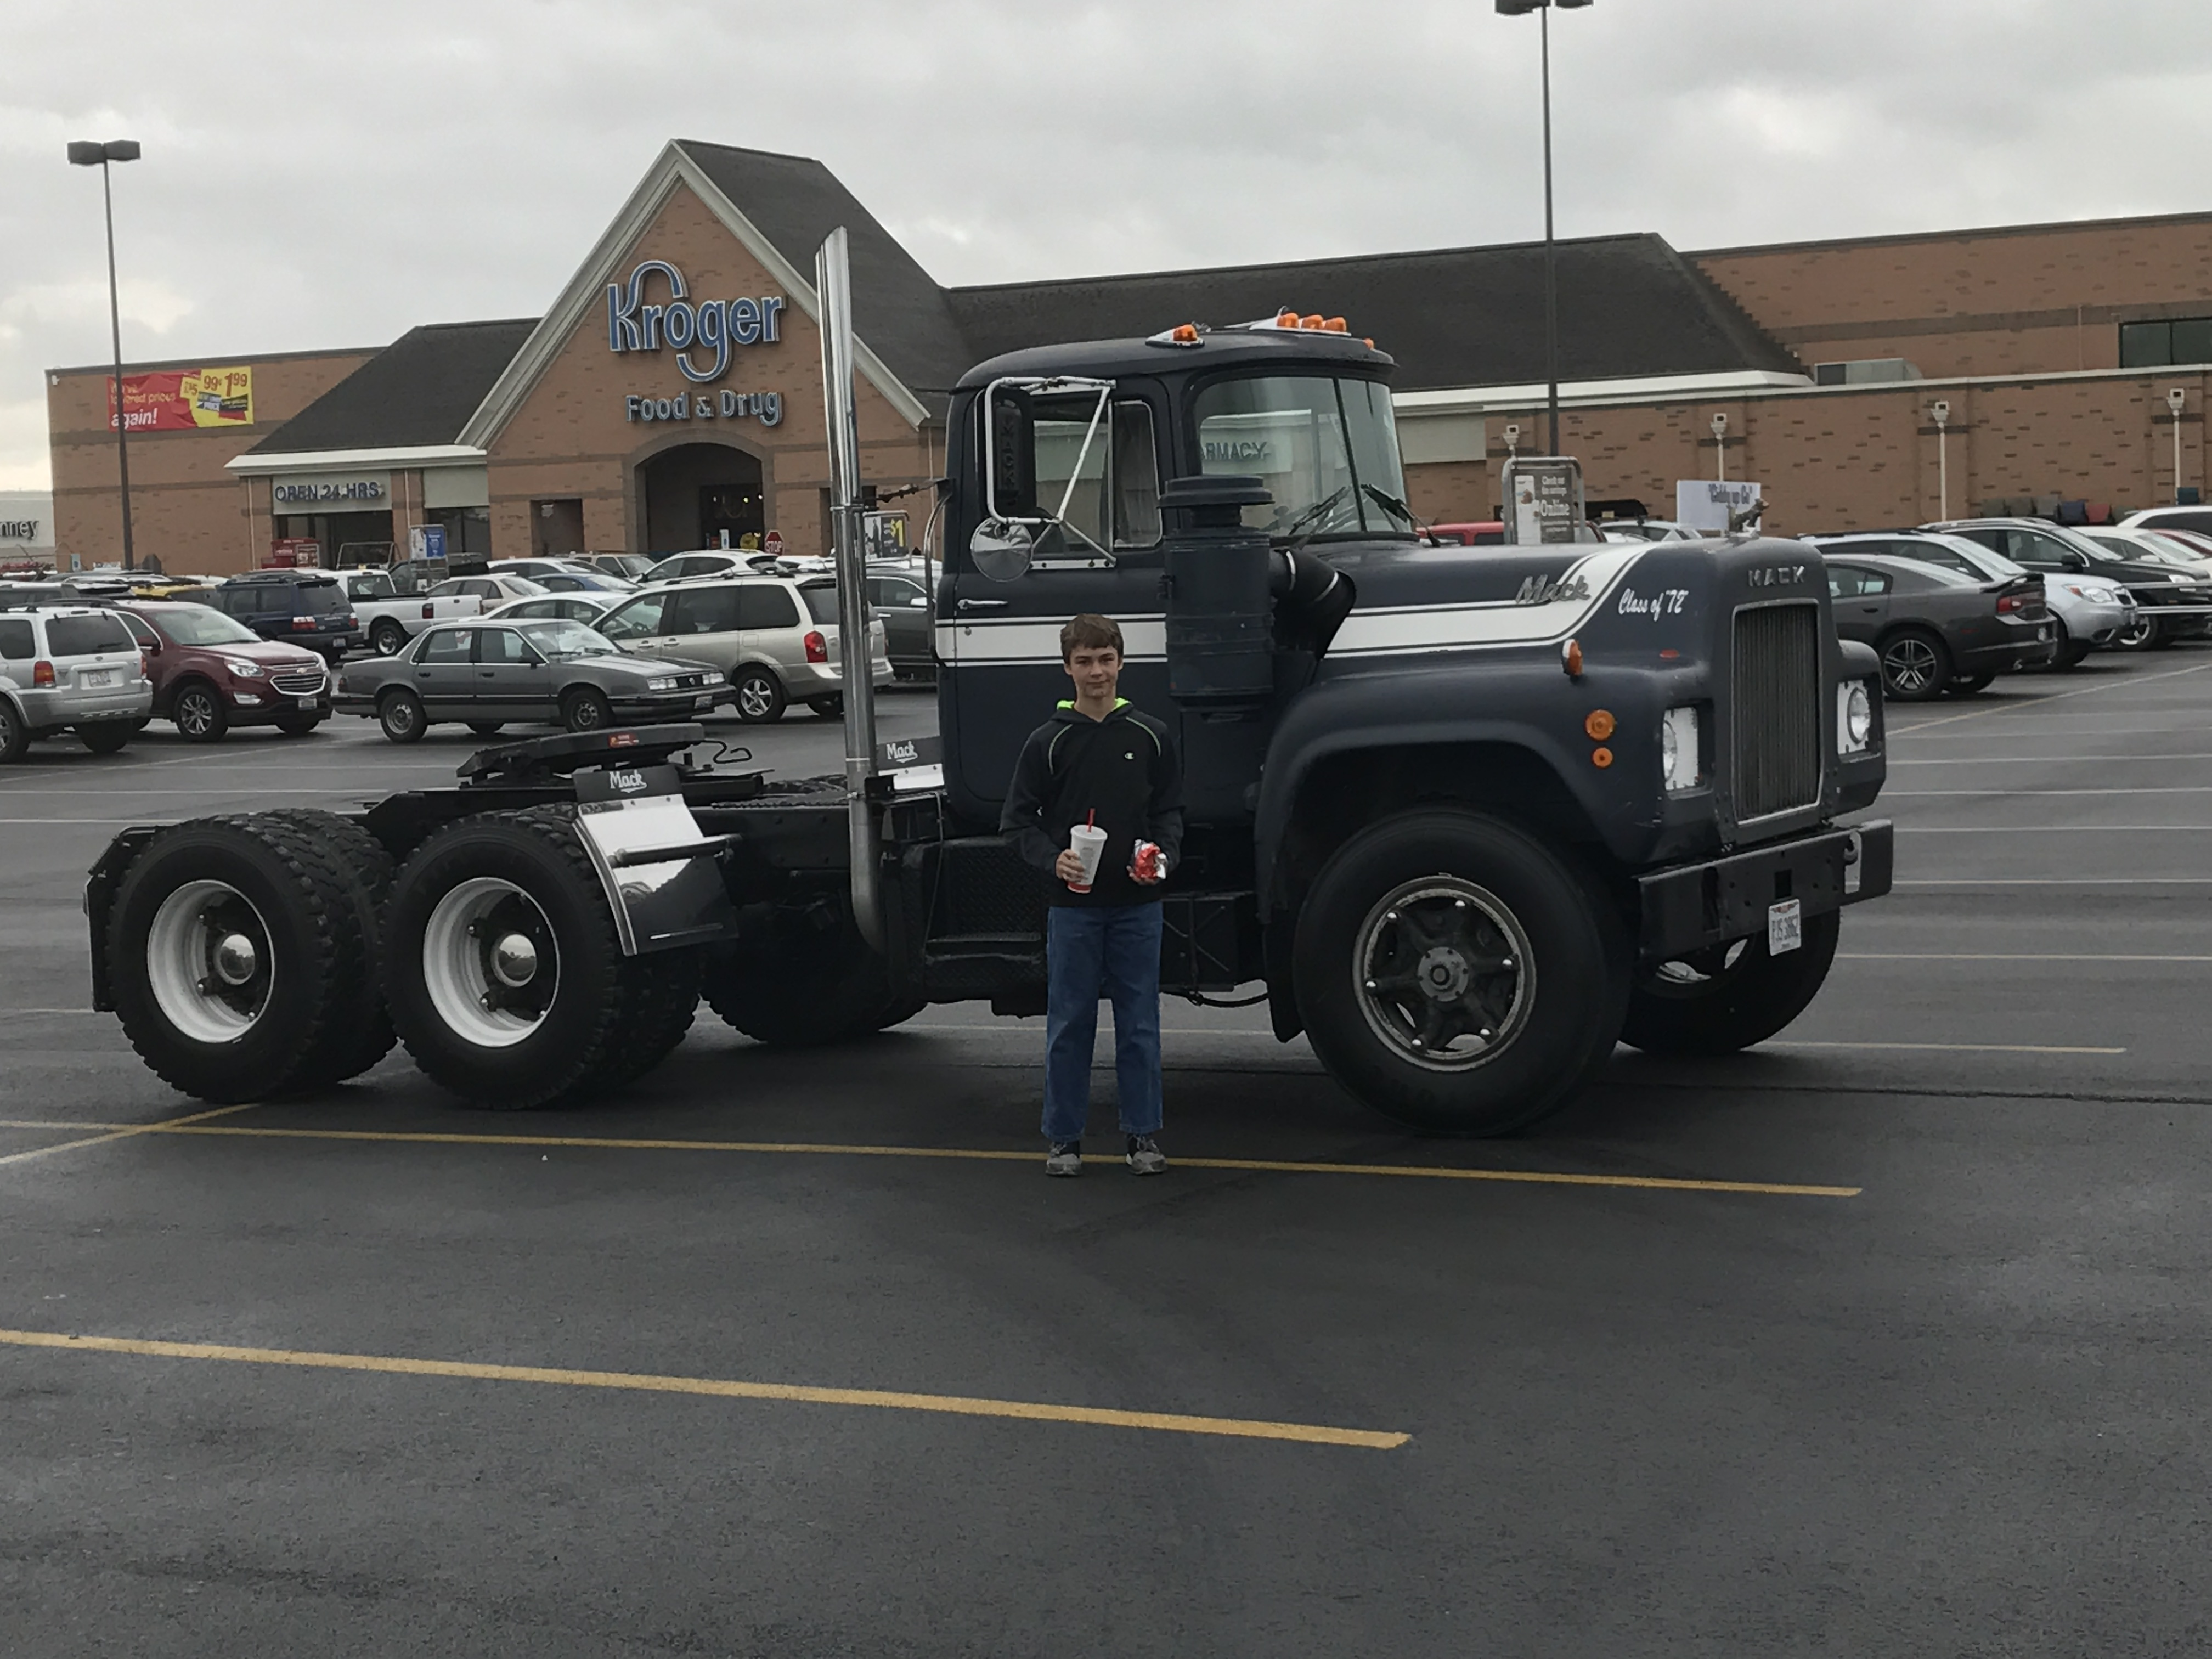 I was in town anyway so I stopped by the grocery store with my sonto pick up a few things.! The people looked at me funny lol & 72 R model grocery getter - Antique and Classic Mack Trucks General ...